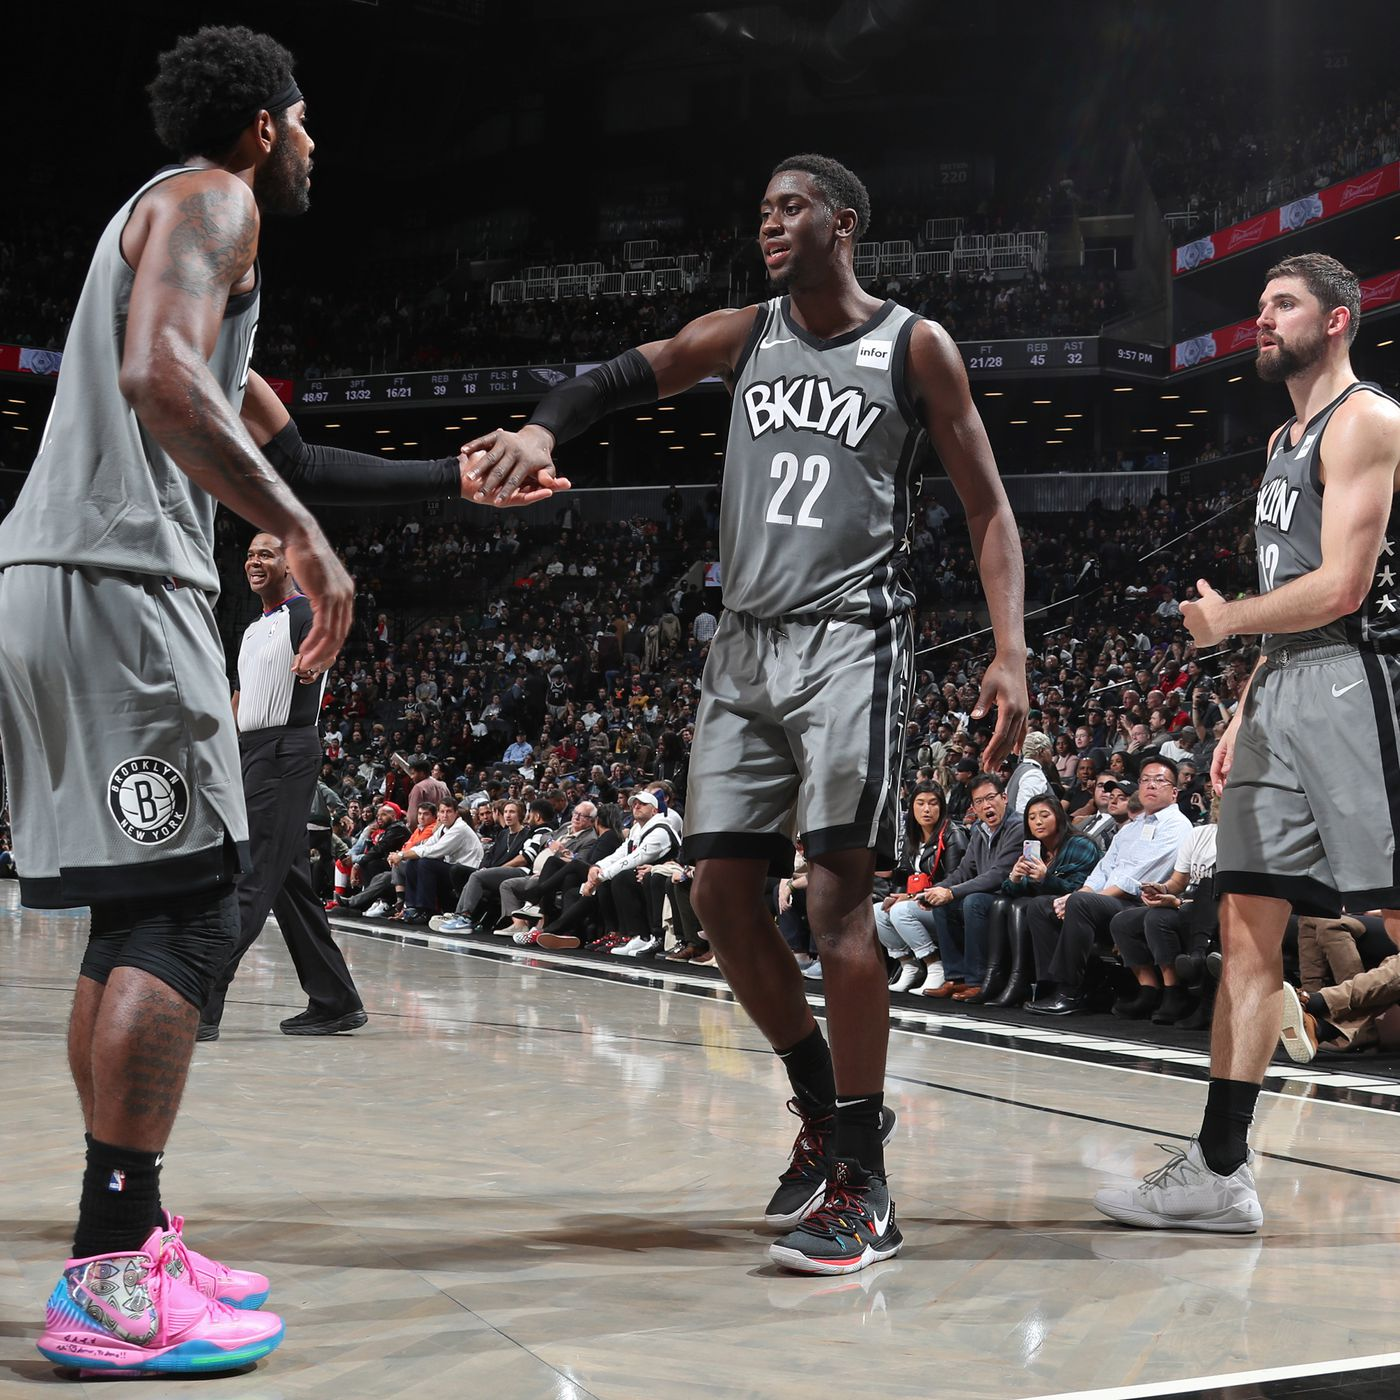 Passing Torches Kyrie Irving Calls Caris Levert To Offer Encouragement Netsdaily